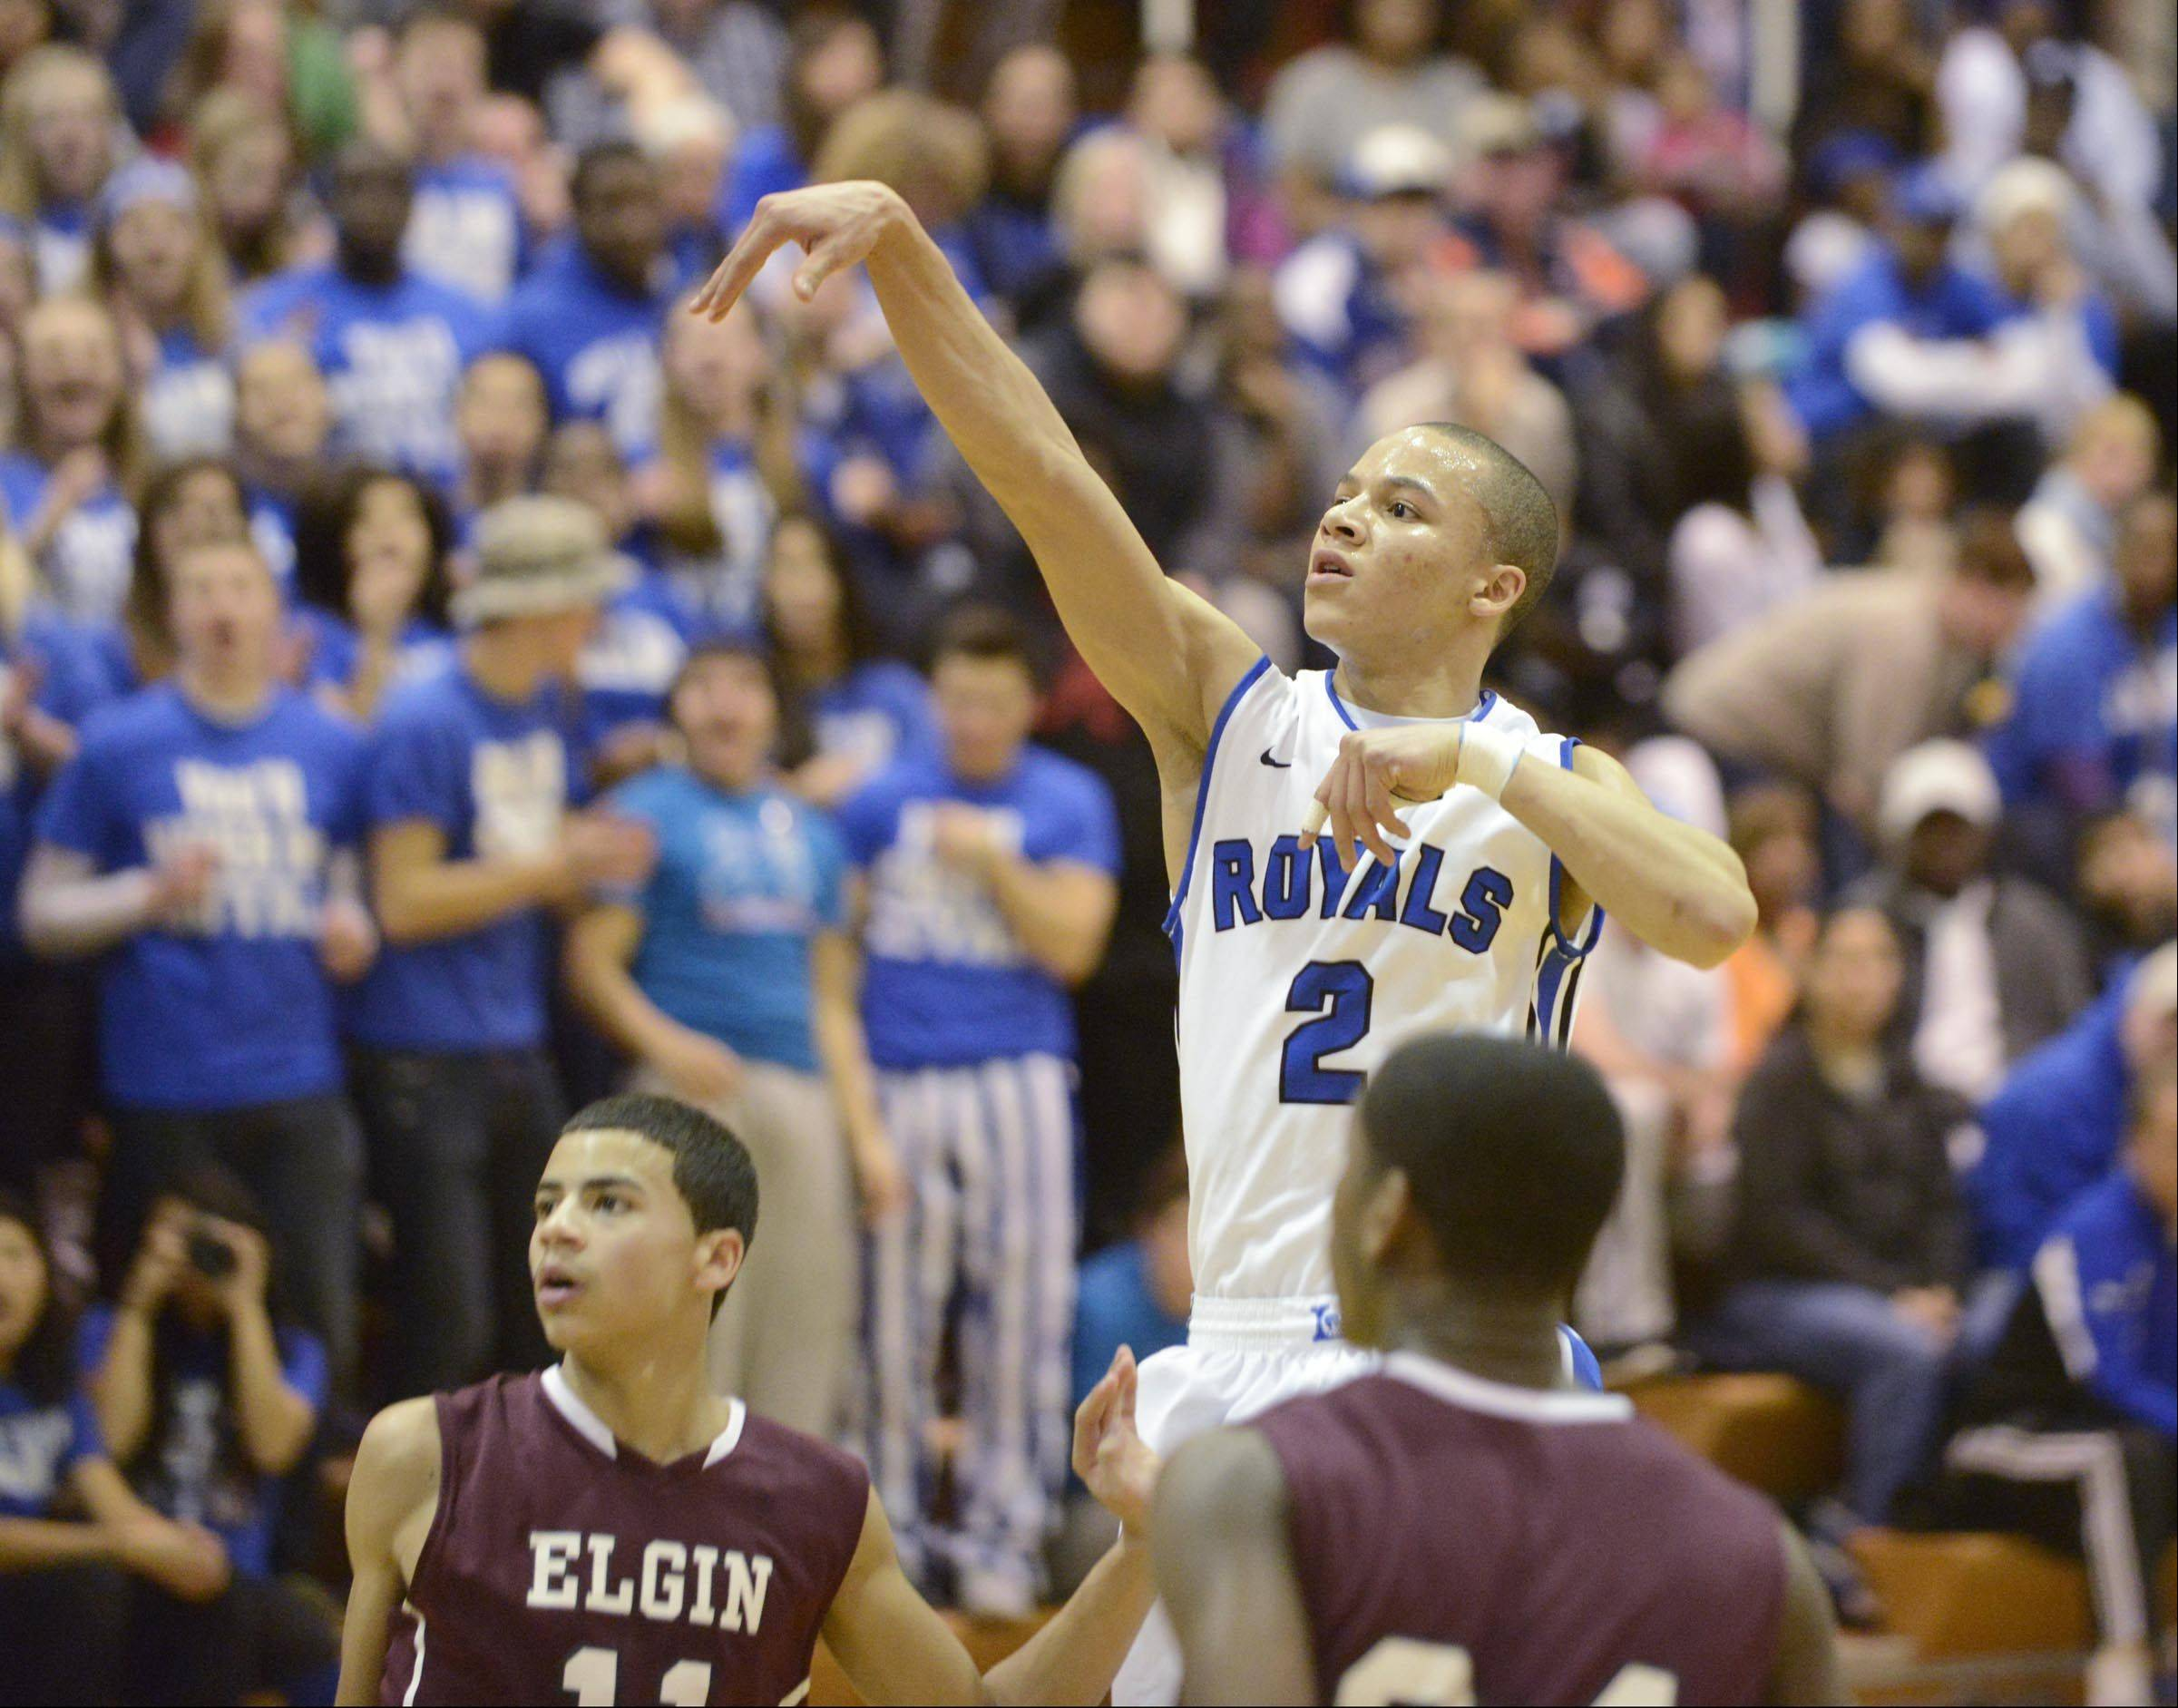 Images from the Elgin at Larkin boys basketball game Friday, February 7, 2014 in Elgin.